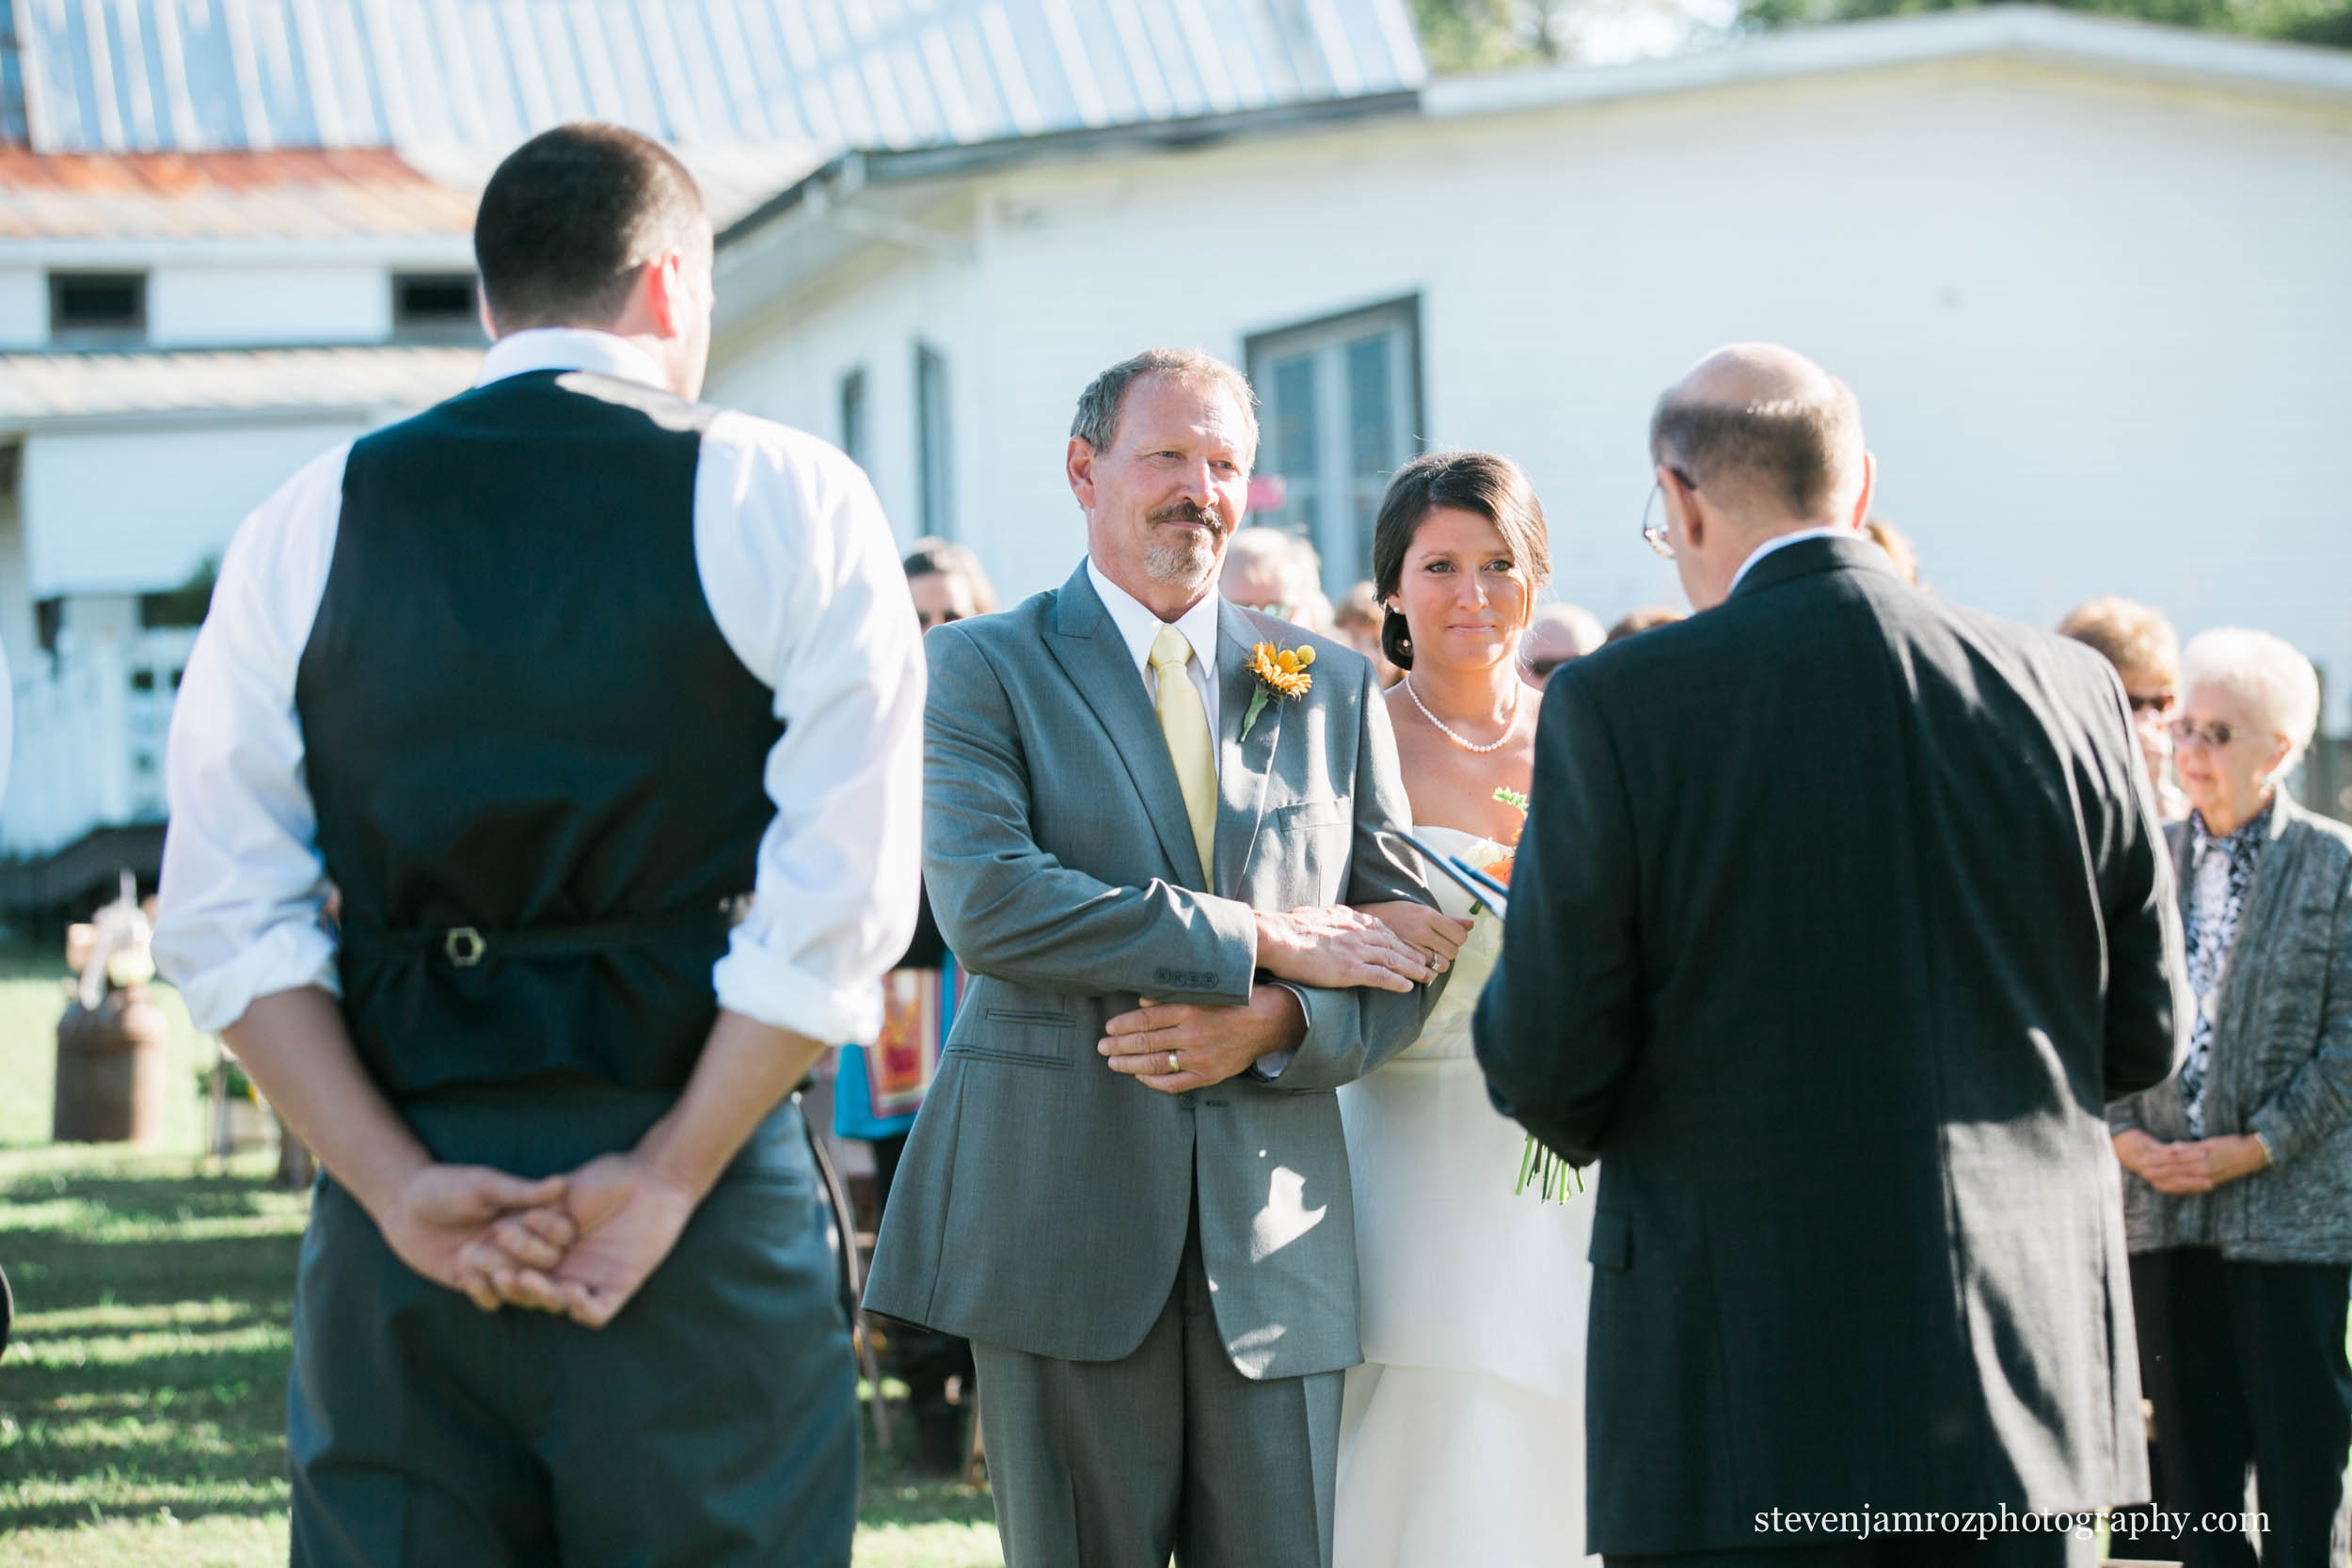 steven-jamroz-photography-snipes-farm-wedding-0366.jpg